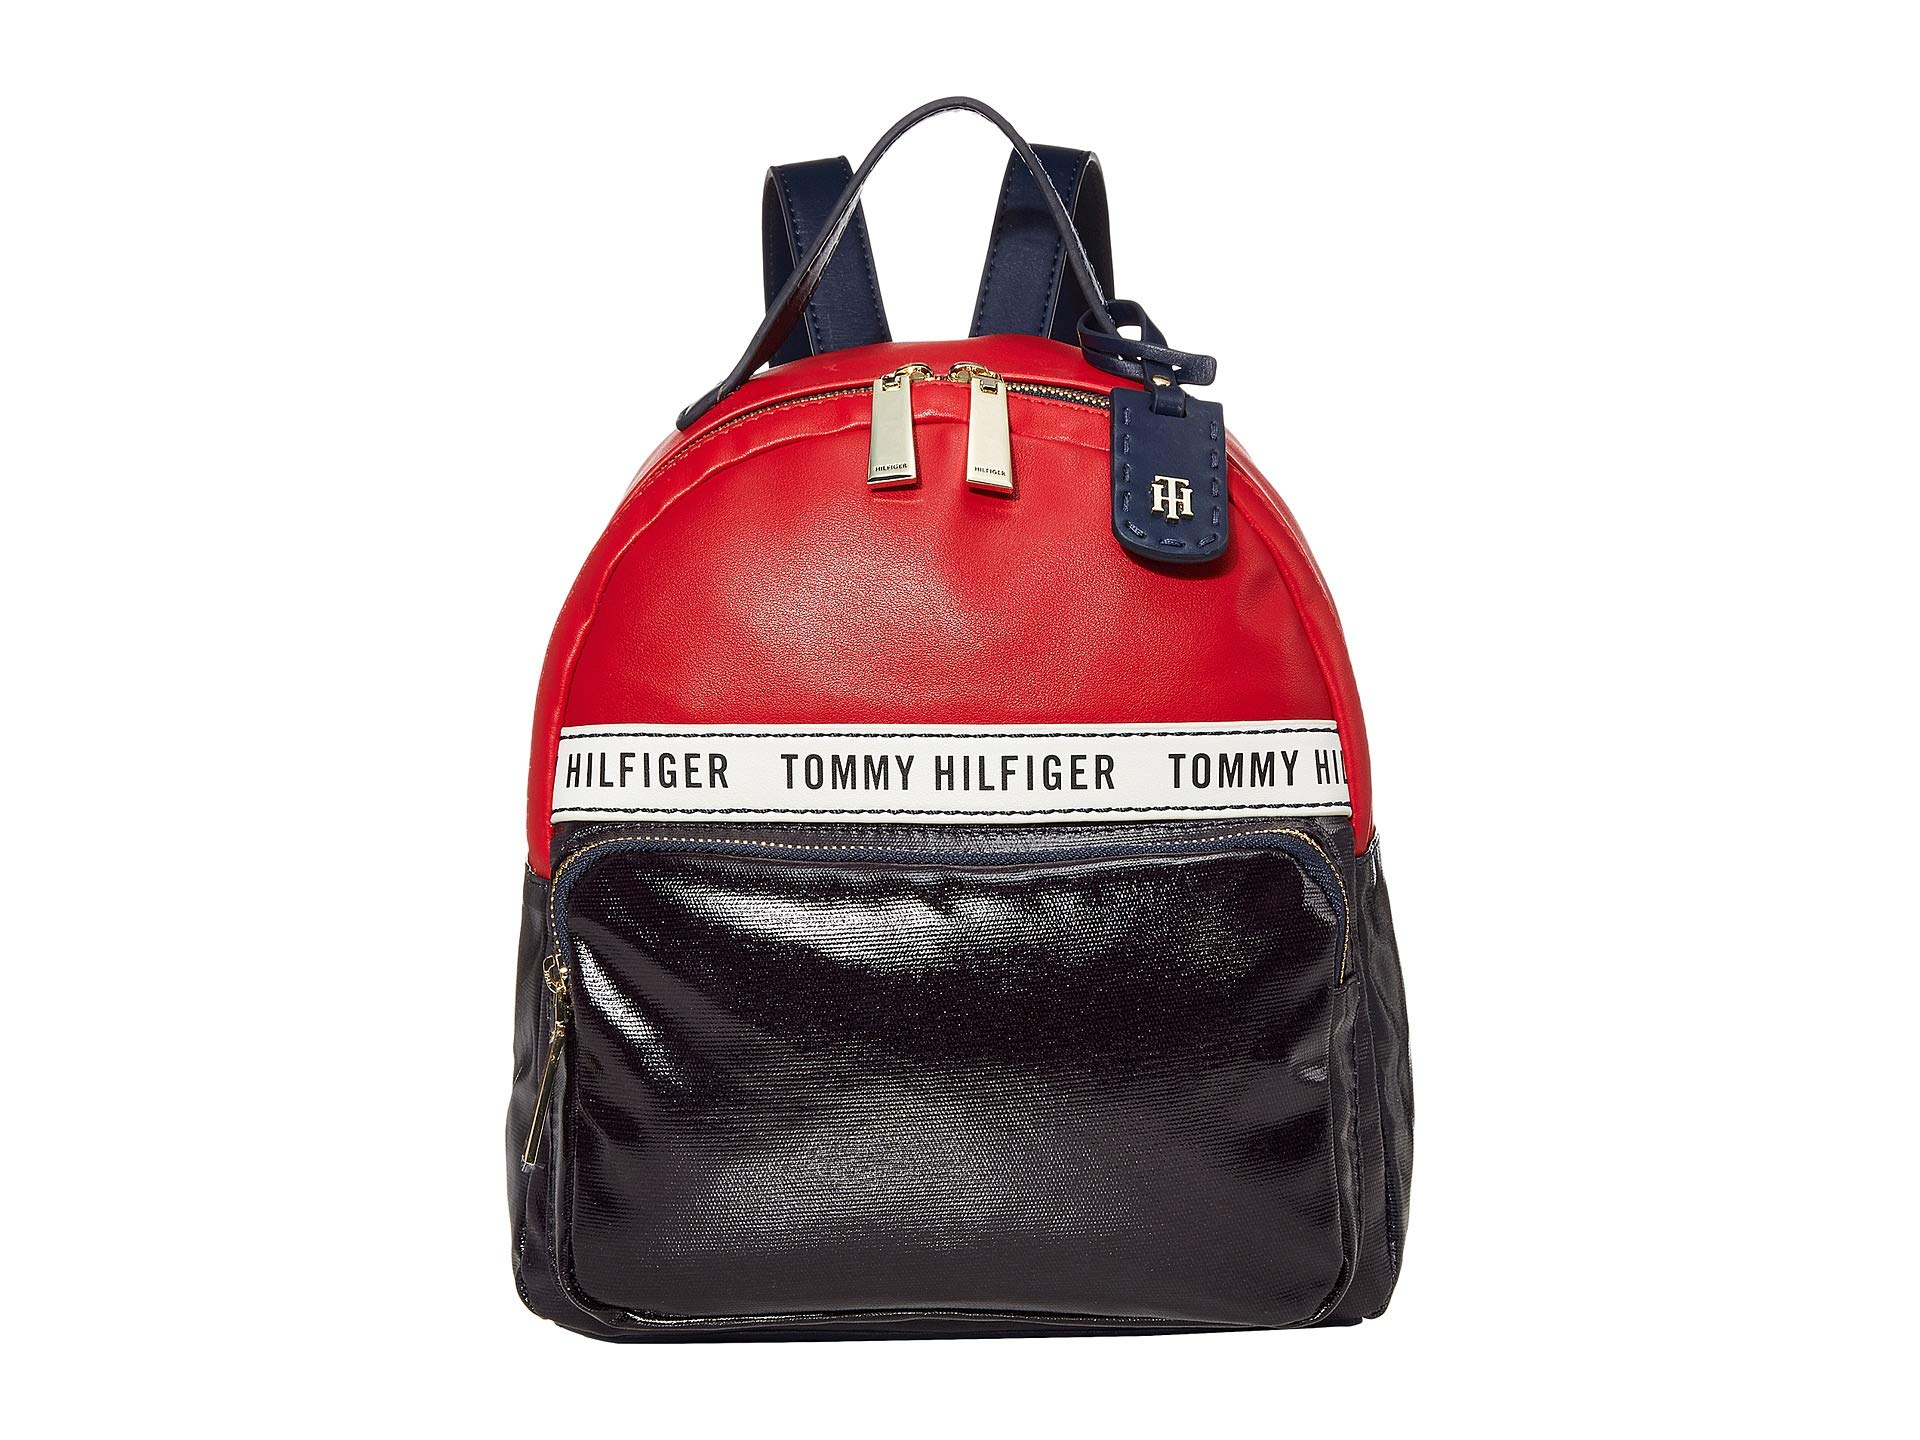 Tommy Hilfiger Tommy Hilfiger Julia Dome Backpack